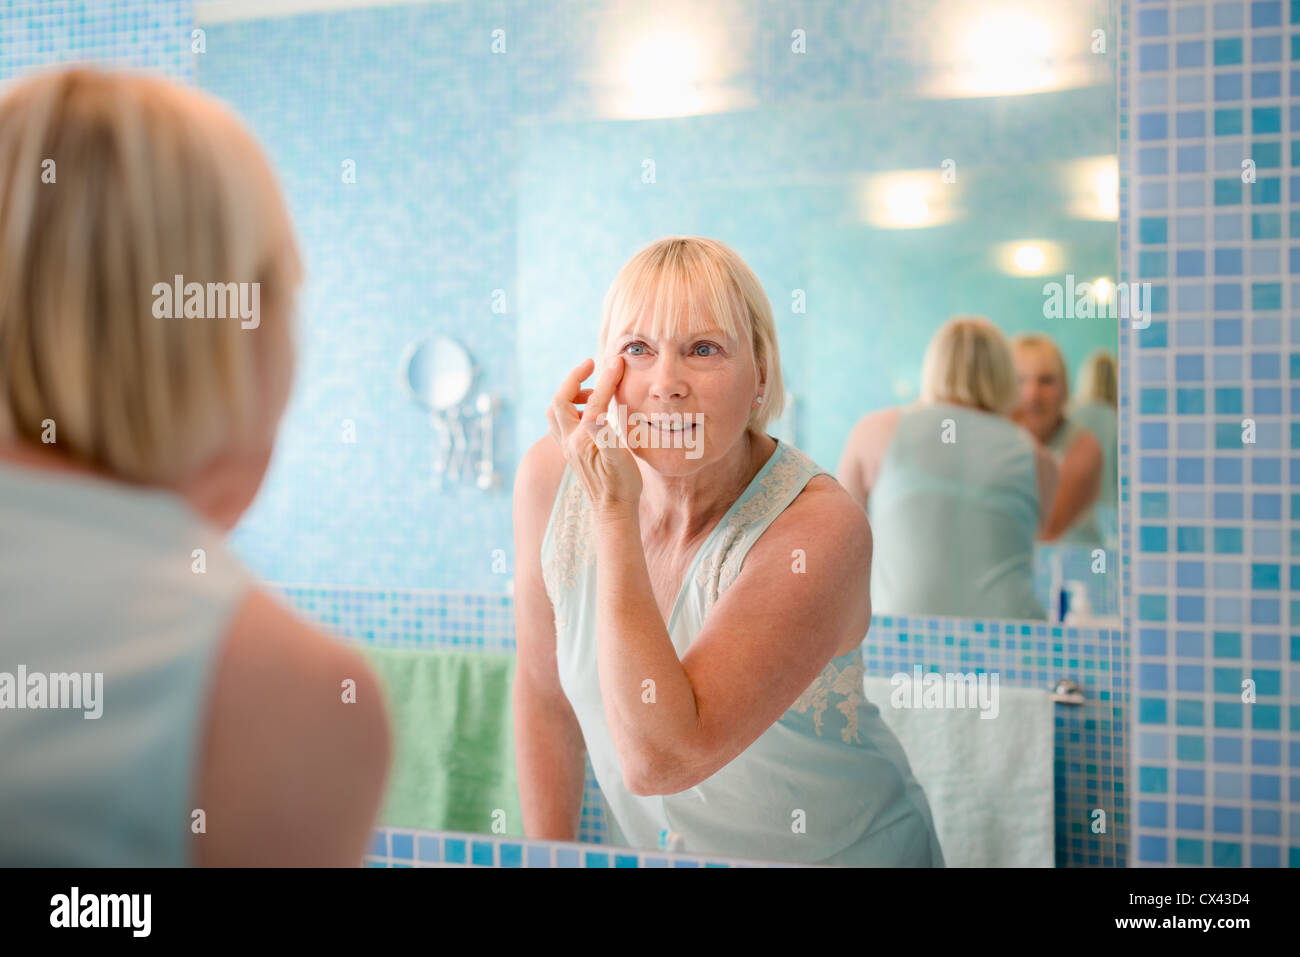 Female beauty, senior caucasian woman applying lotion on face in bathroom at home - Stock Image